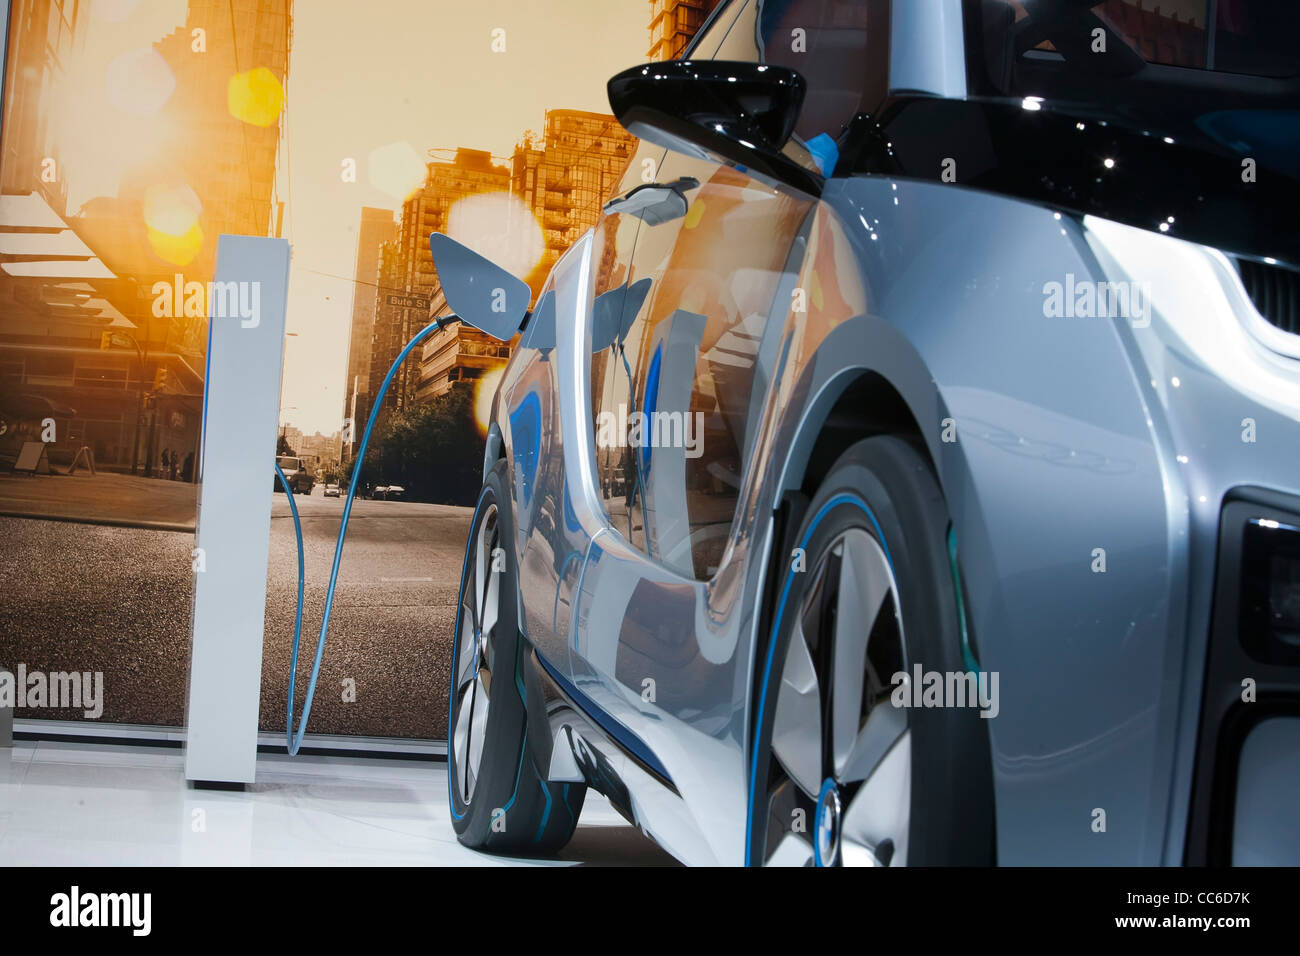 Detroit, Michigan - The BMW i3 concept electric vehicle on display at the North American International Auto Show. - Stock Image